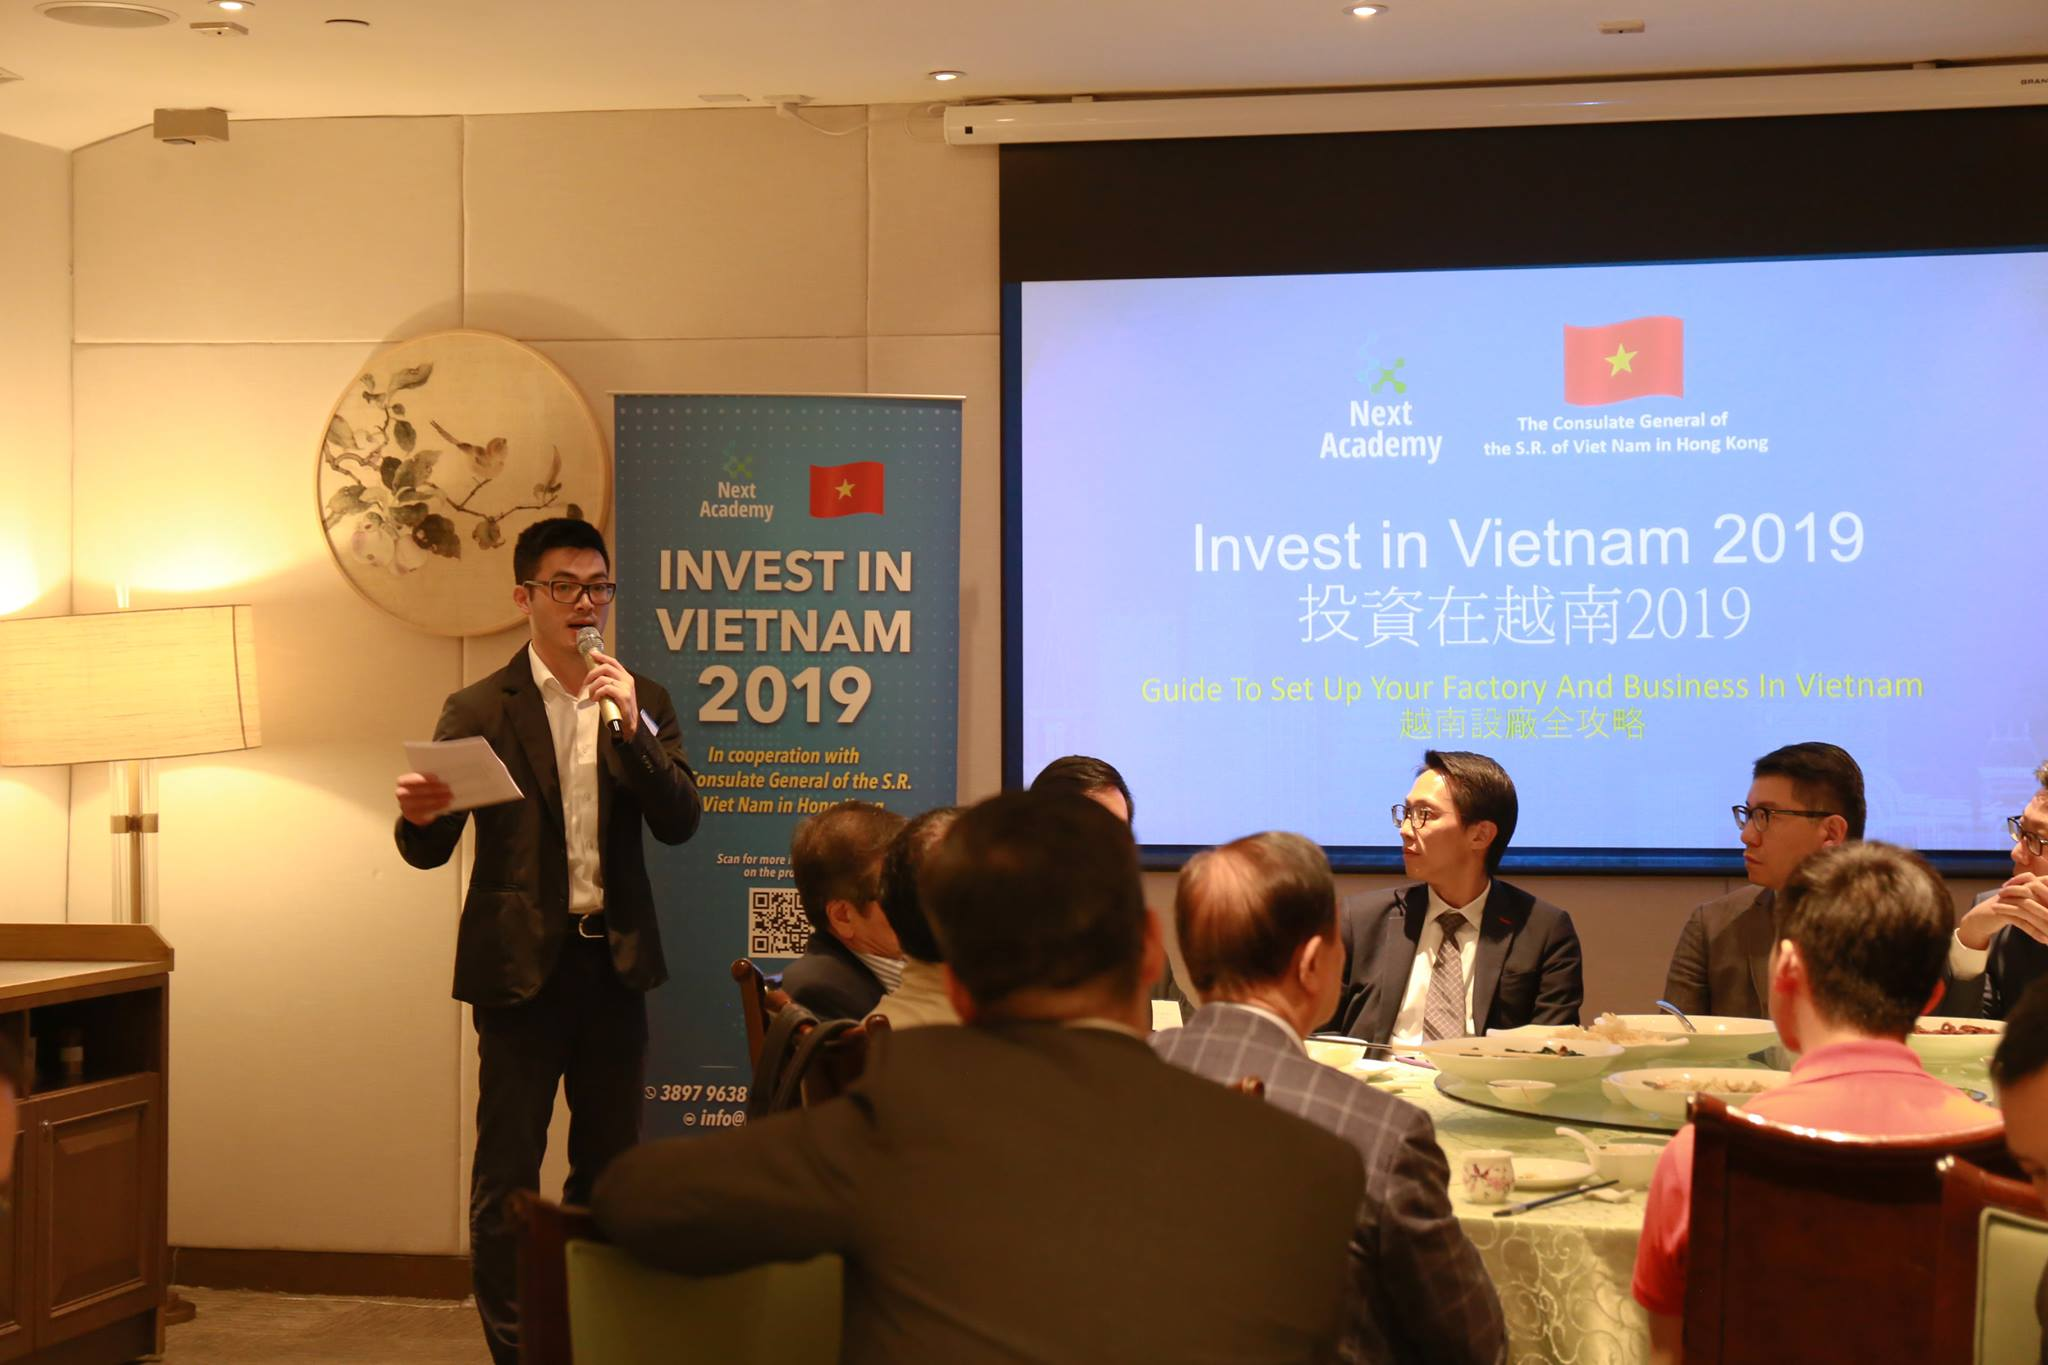 Mr Duy Kien Nguyen, the Deputy Consul General of Vietnam in Hong Kong (Economy-Commerce)